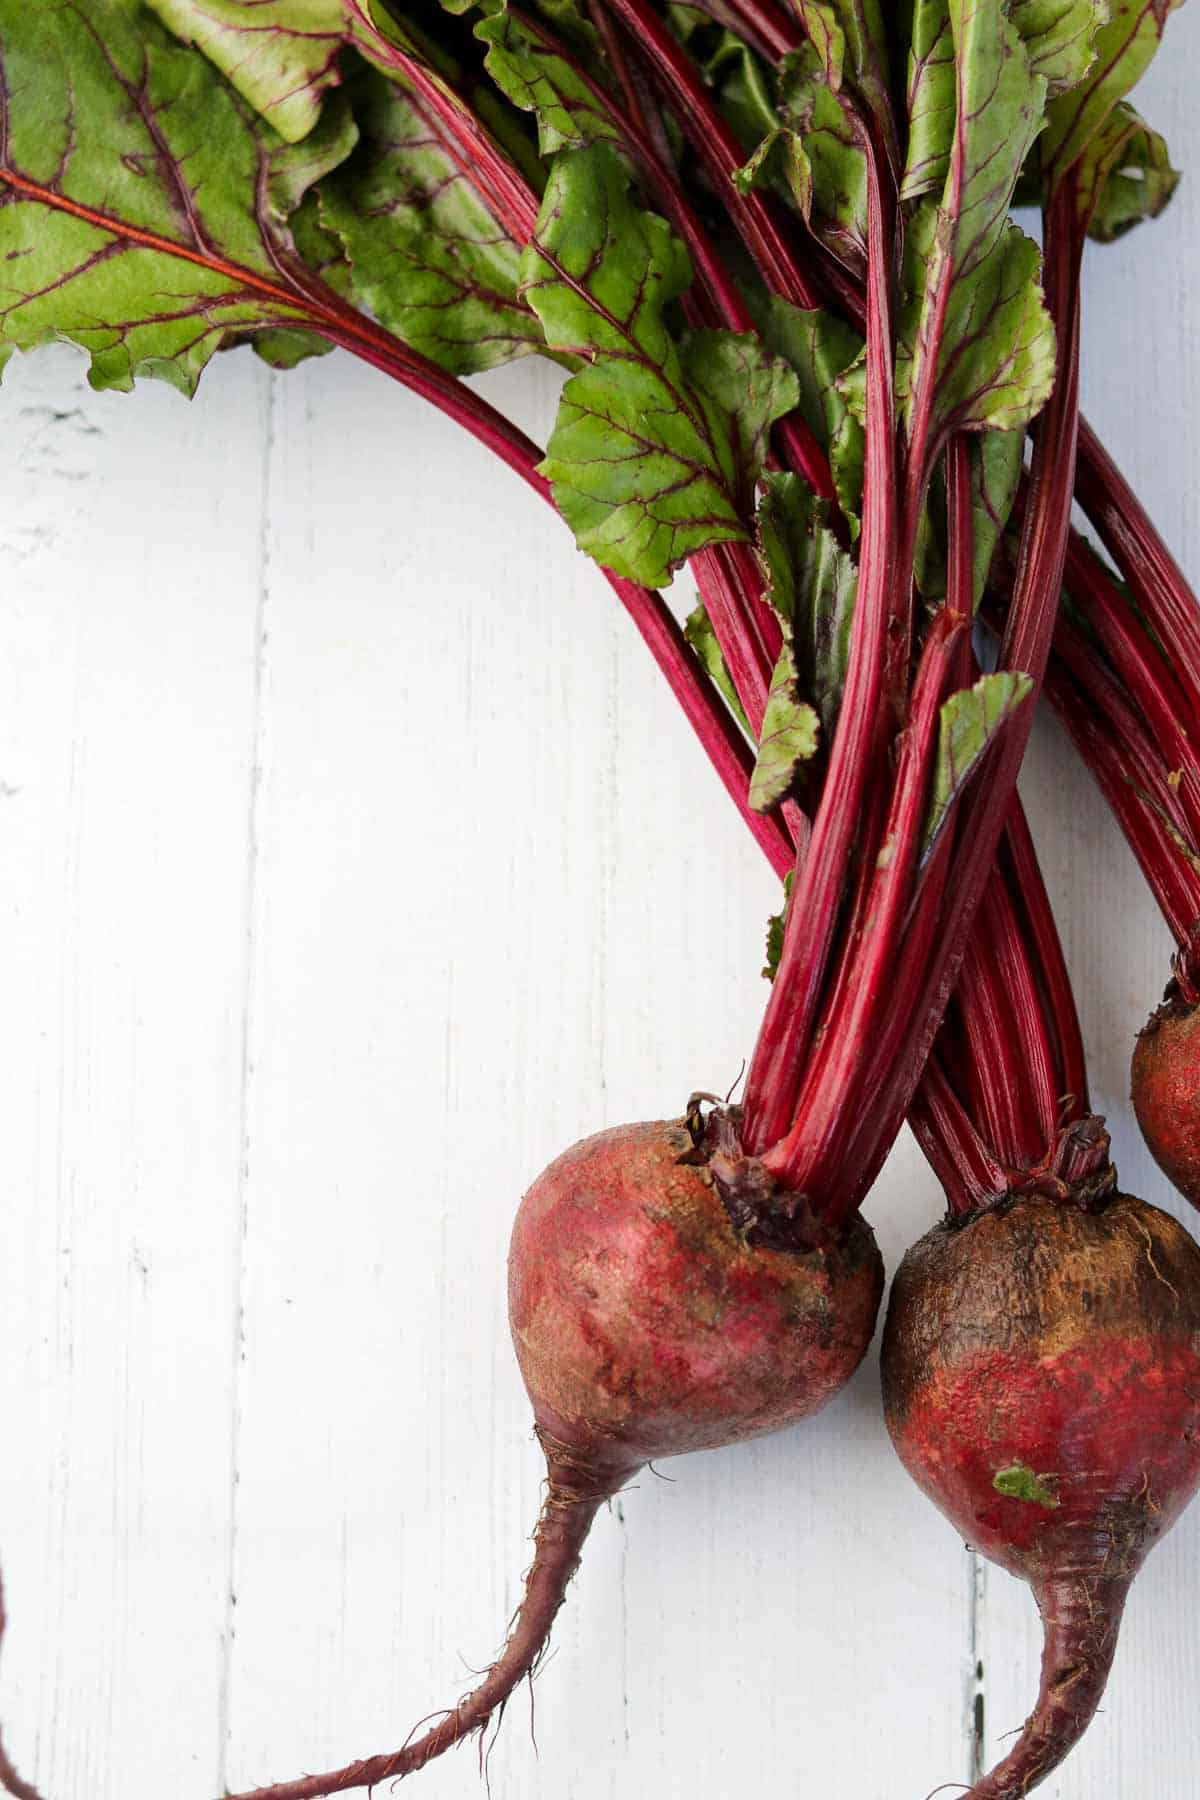 Beets on a white wooden surface.